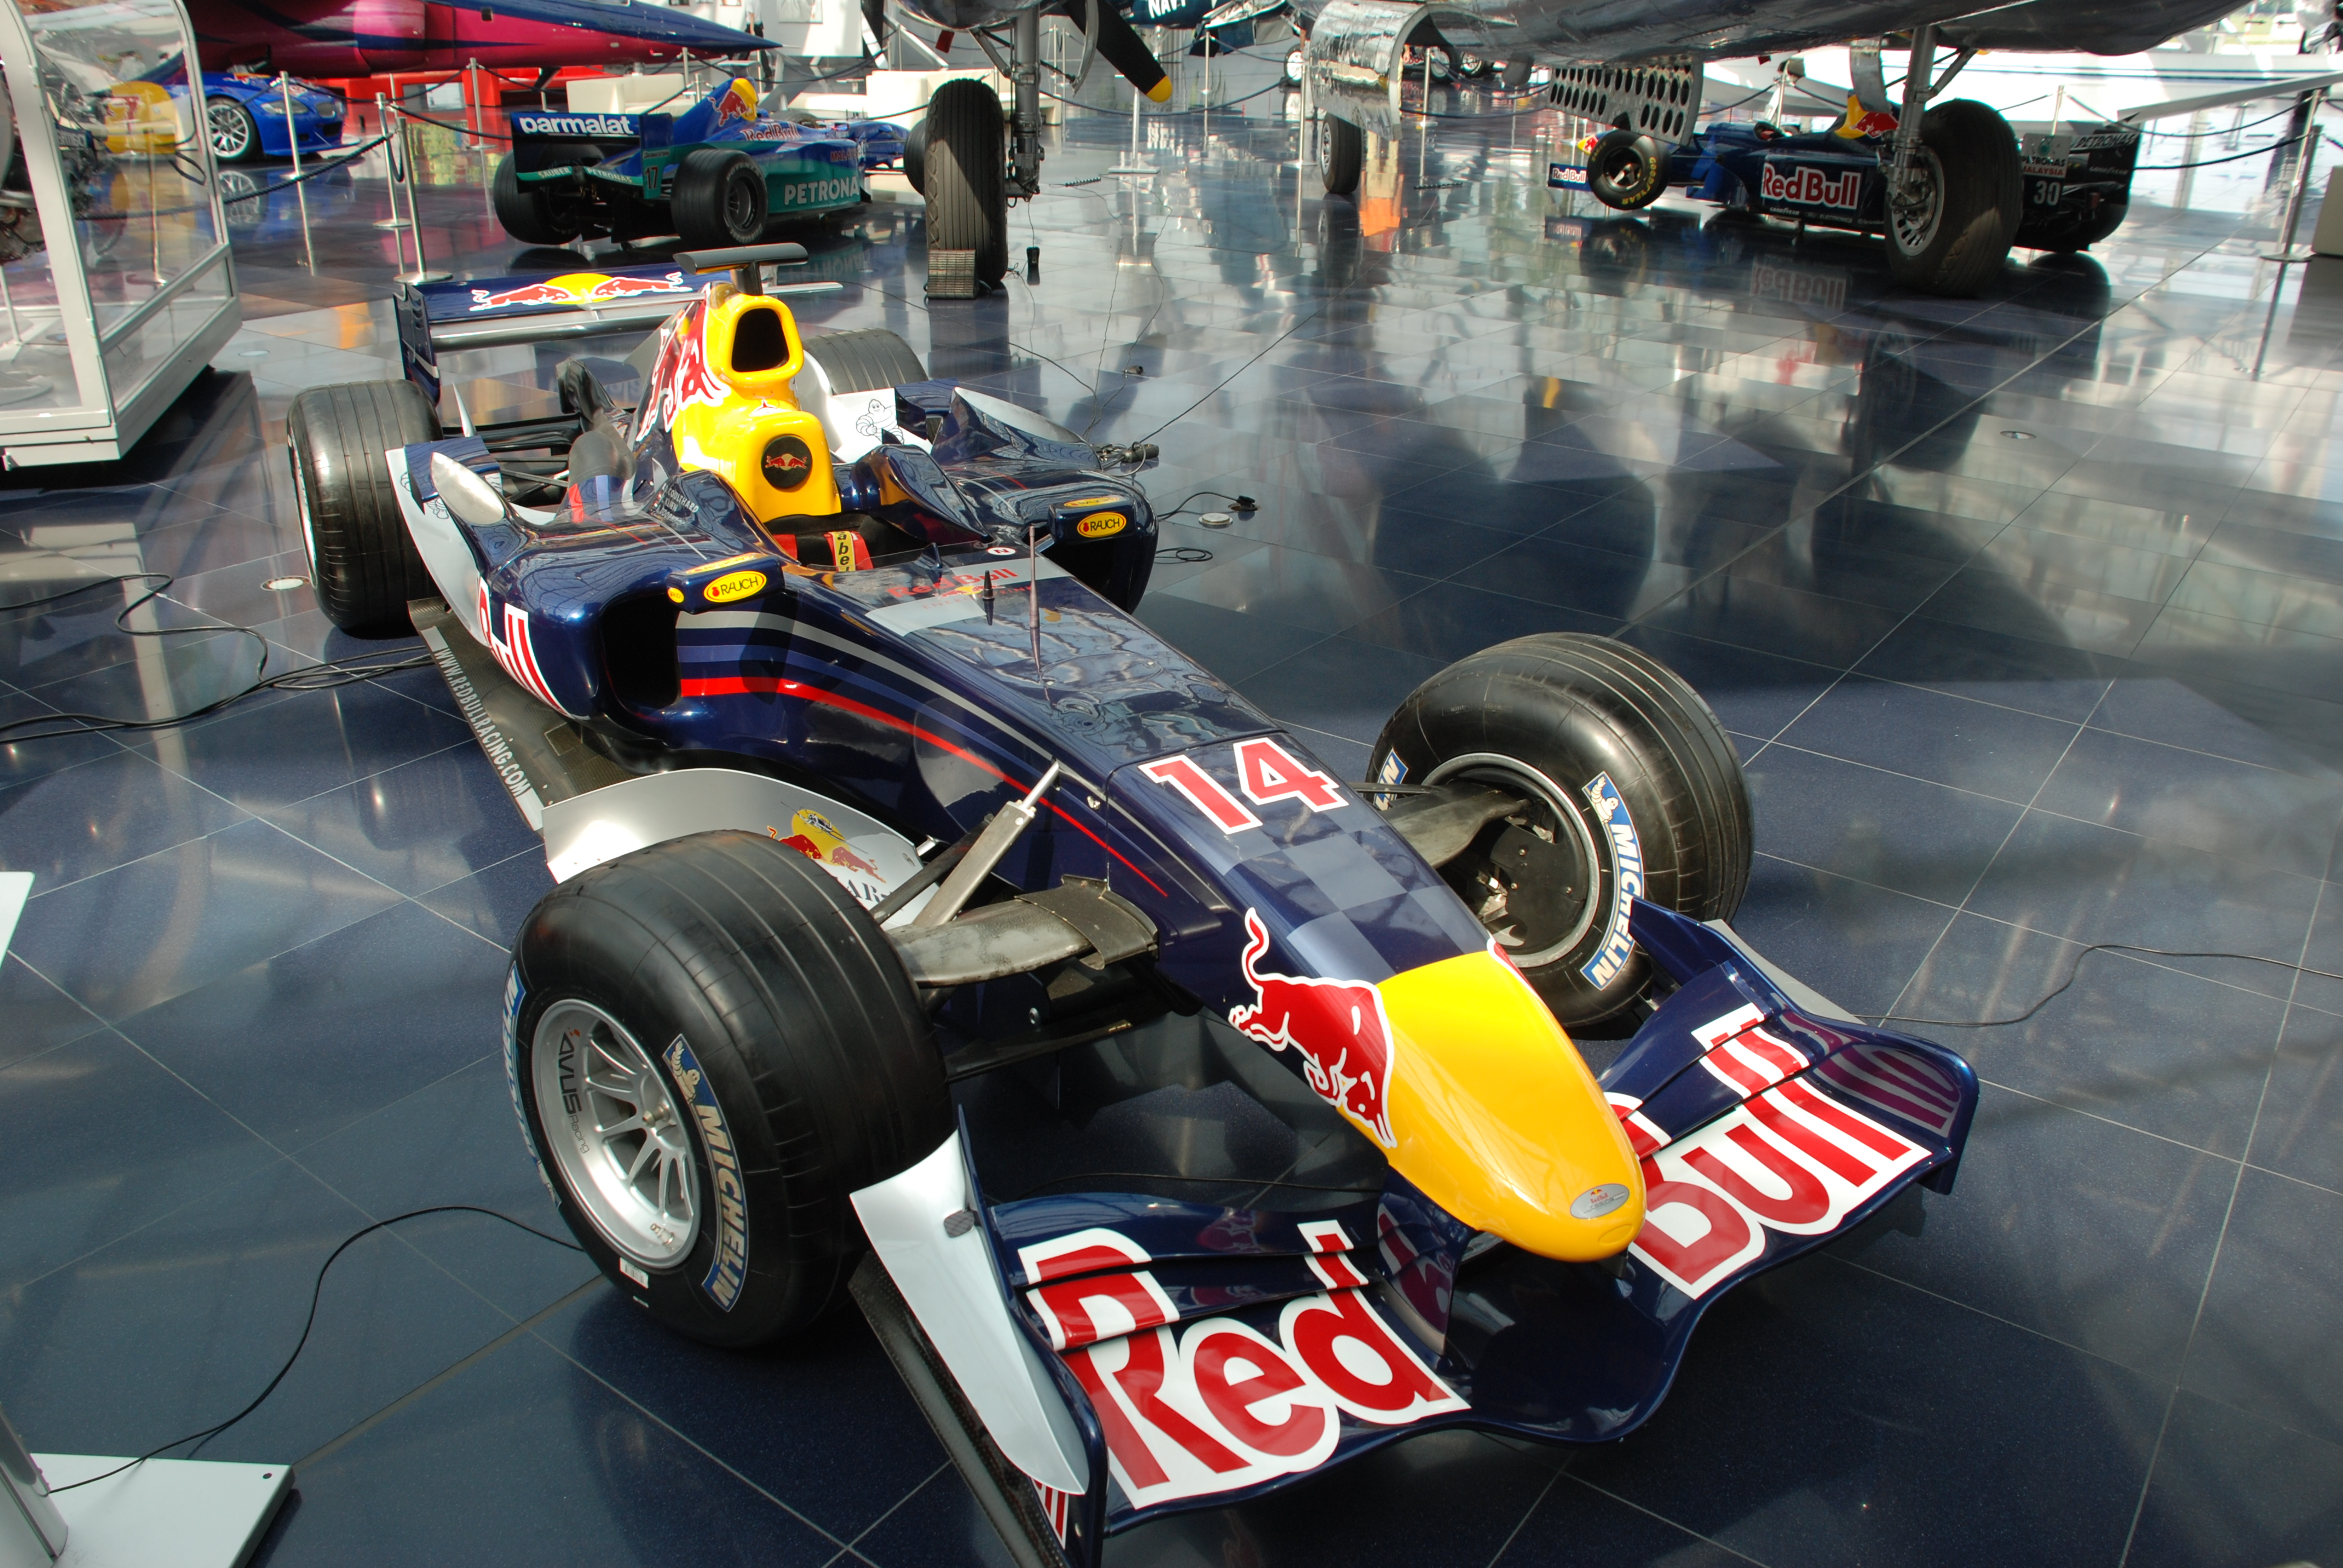 Red bull rb2 photo - 2